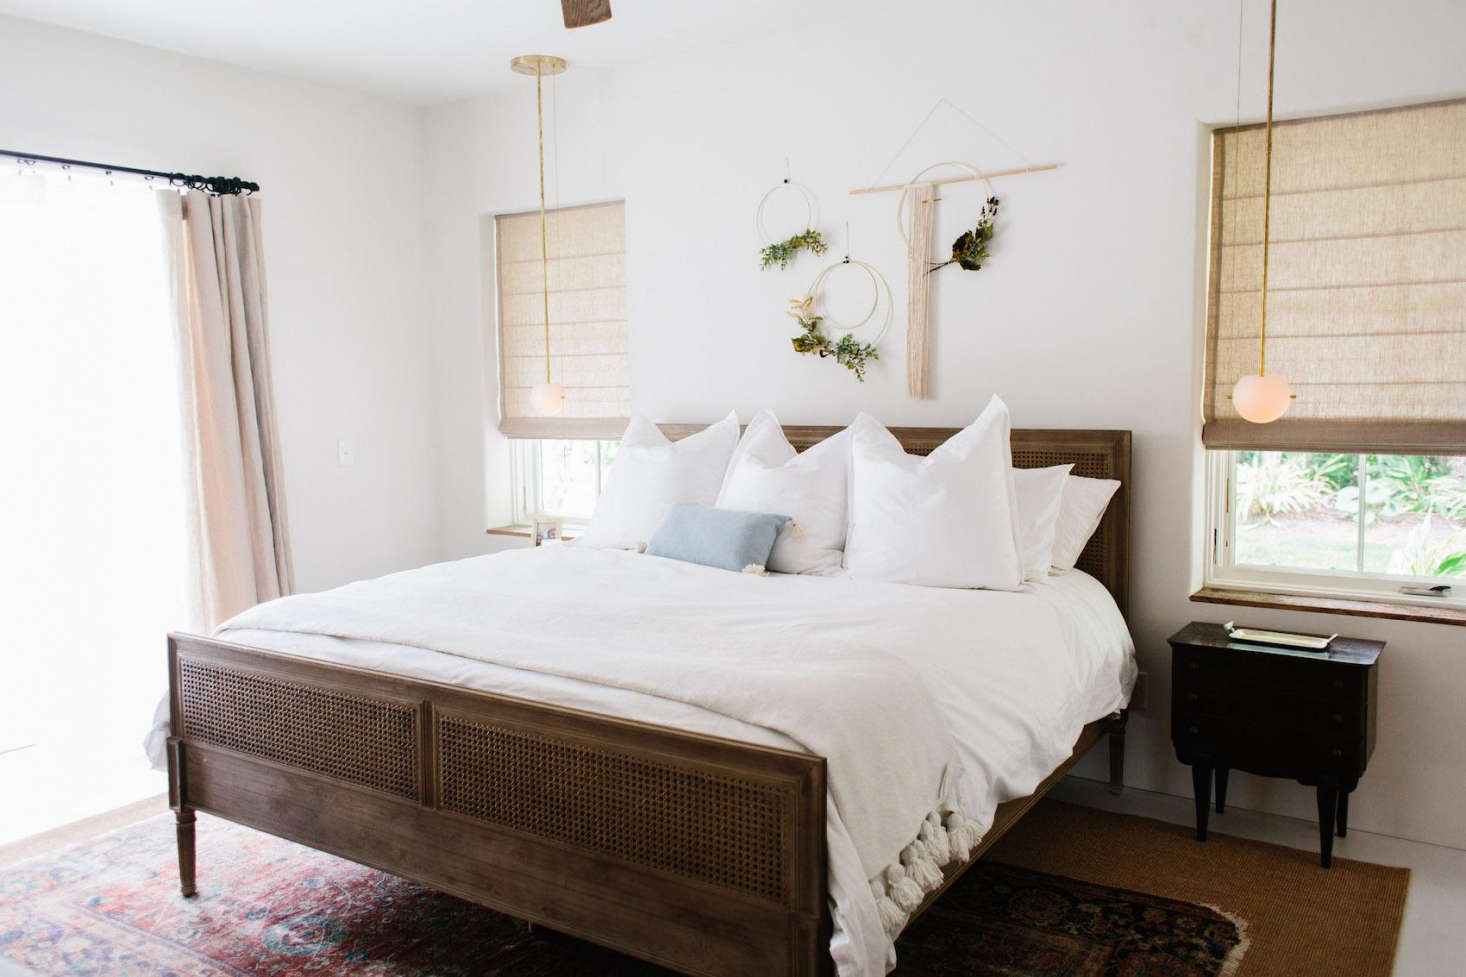 The master bedroom sports a Harbour Cane Bed from Serena & Lily. Flanking the bed are two Signal Pendants from Workstead. The flooring in all three bedrooms iswhite oak planks.